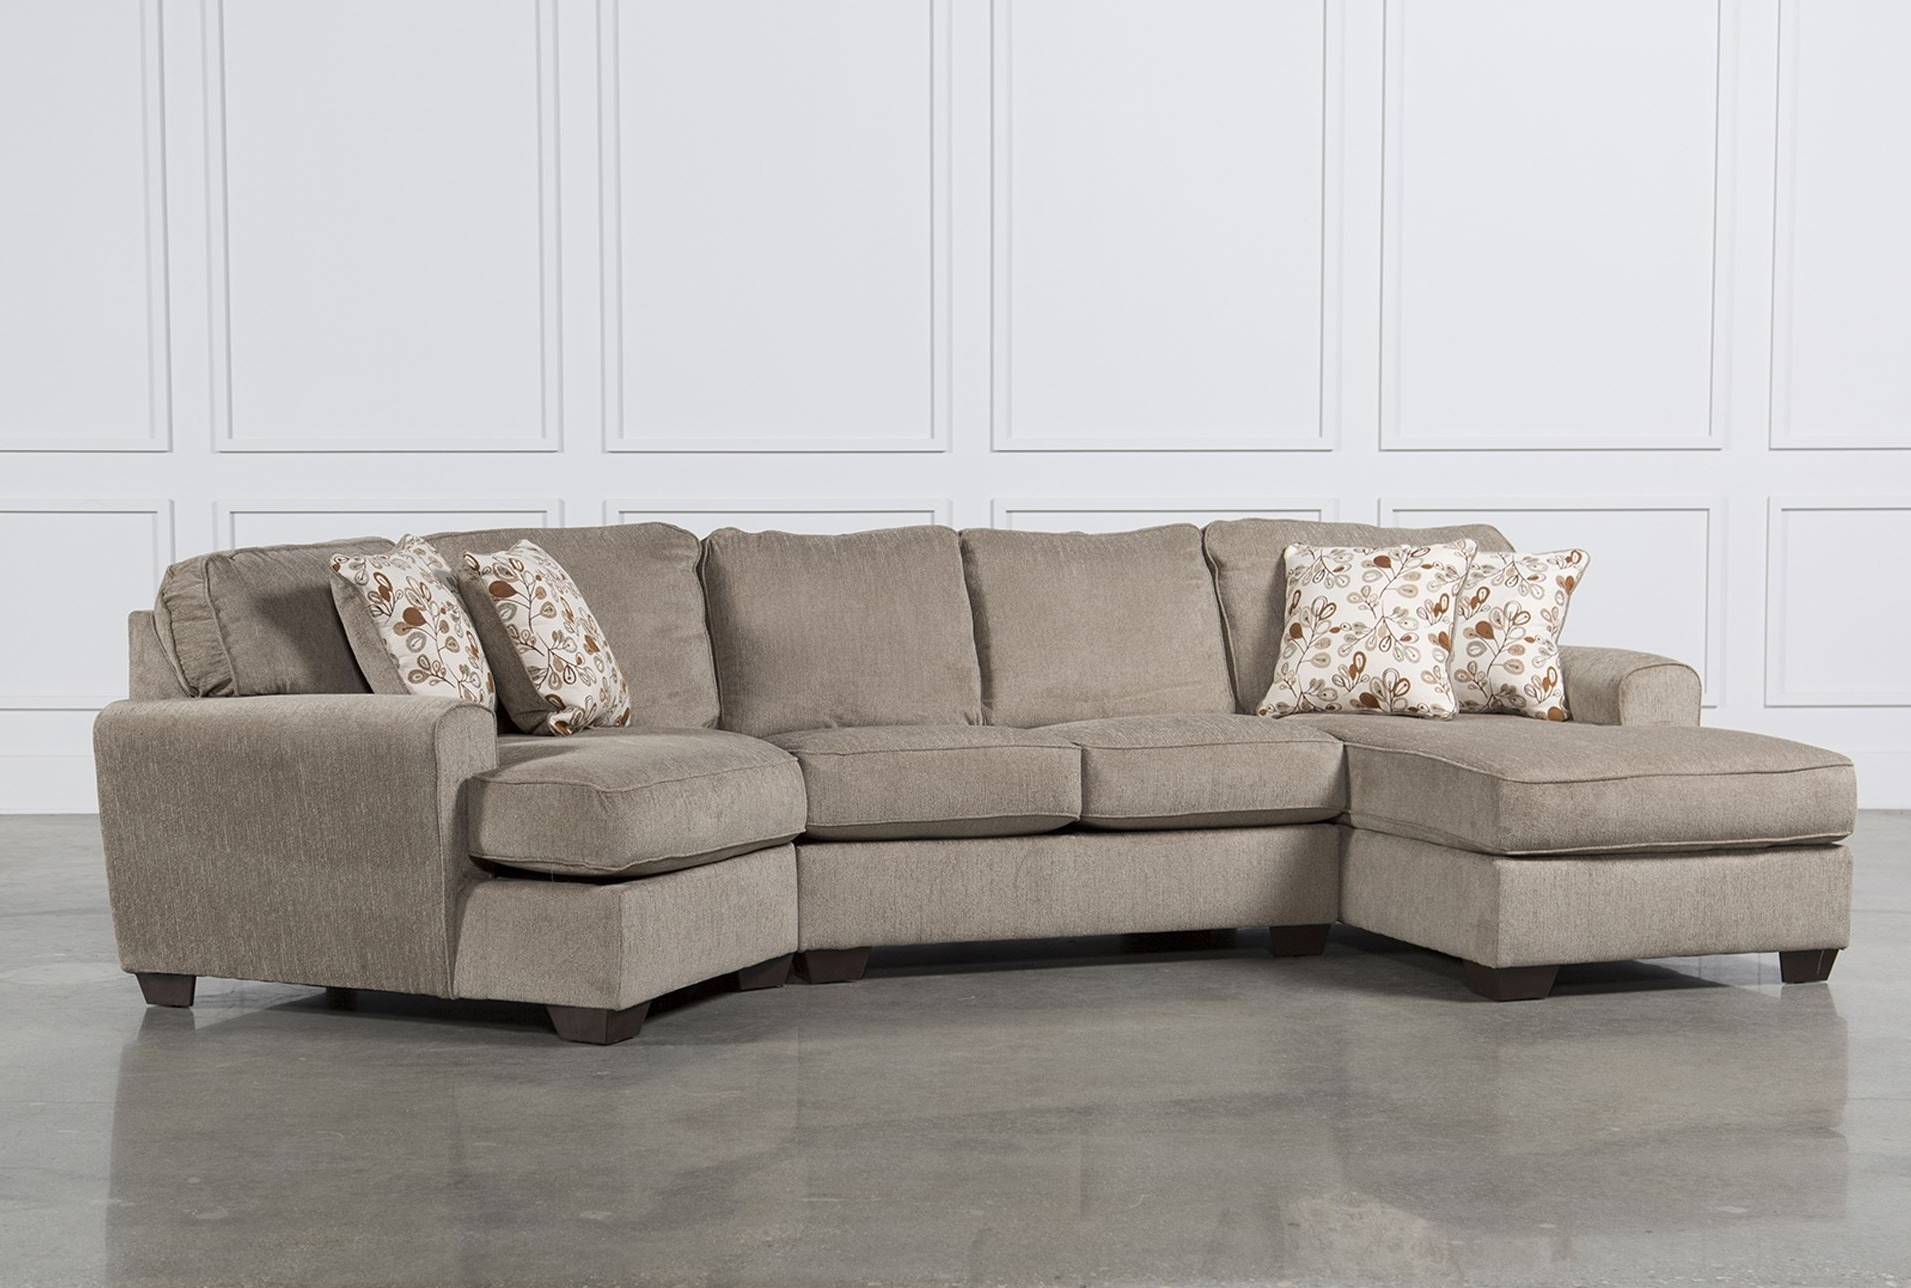 Fancy Sectional Sofa With Cuddler 52 For Contemporary Sofa Inside Most Recent Cuddler Sectional Sofas (View 10 of 20)